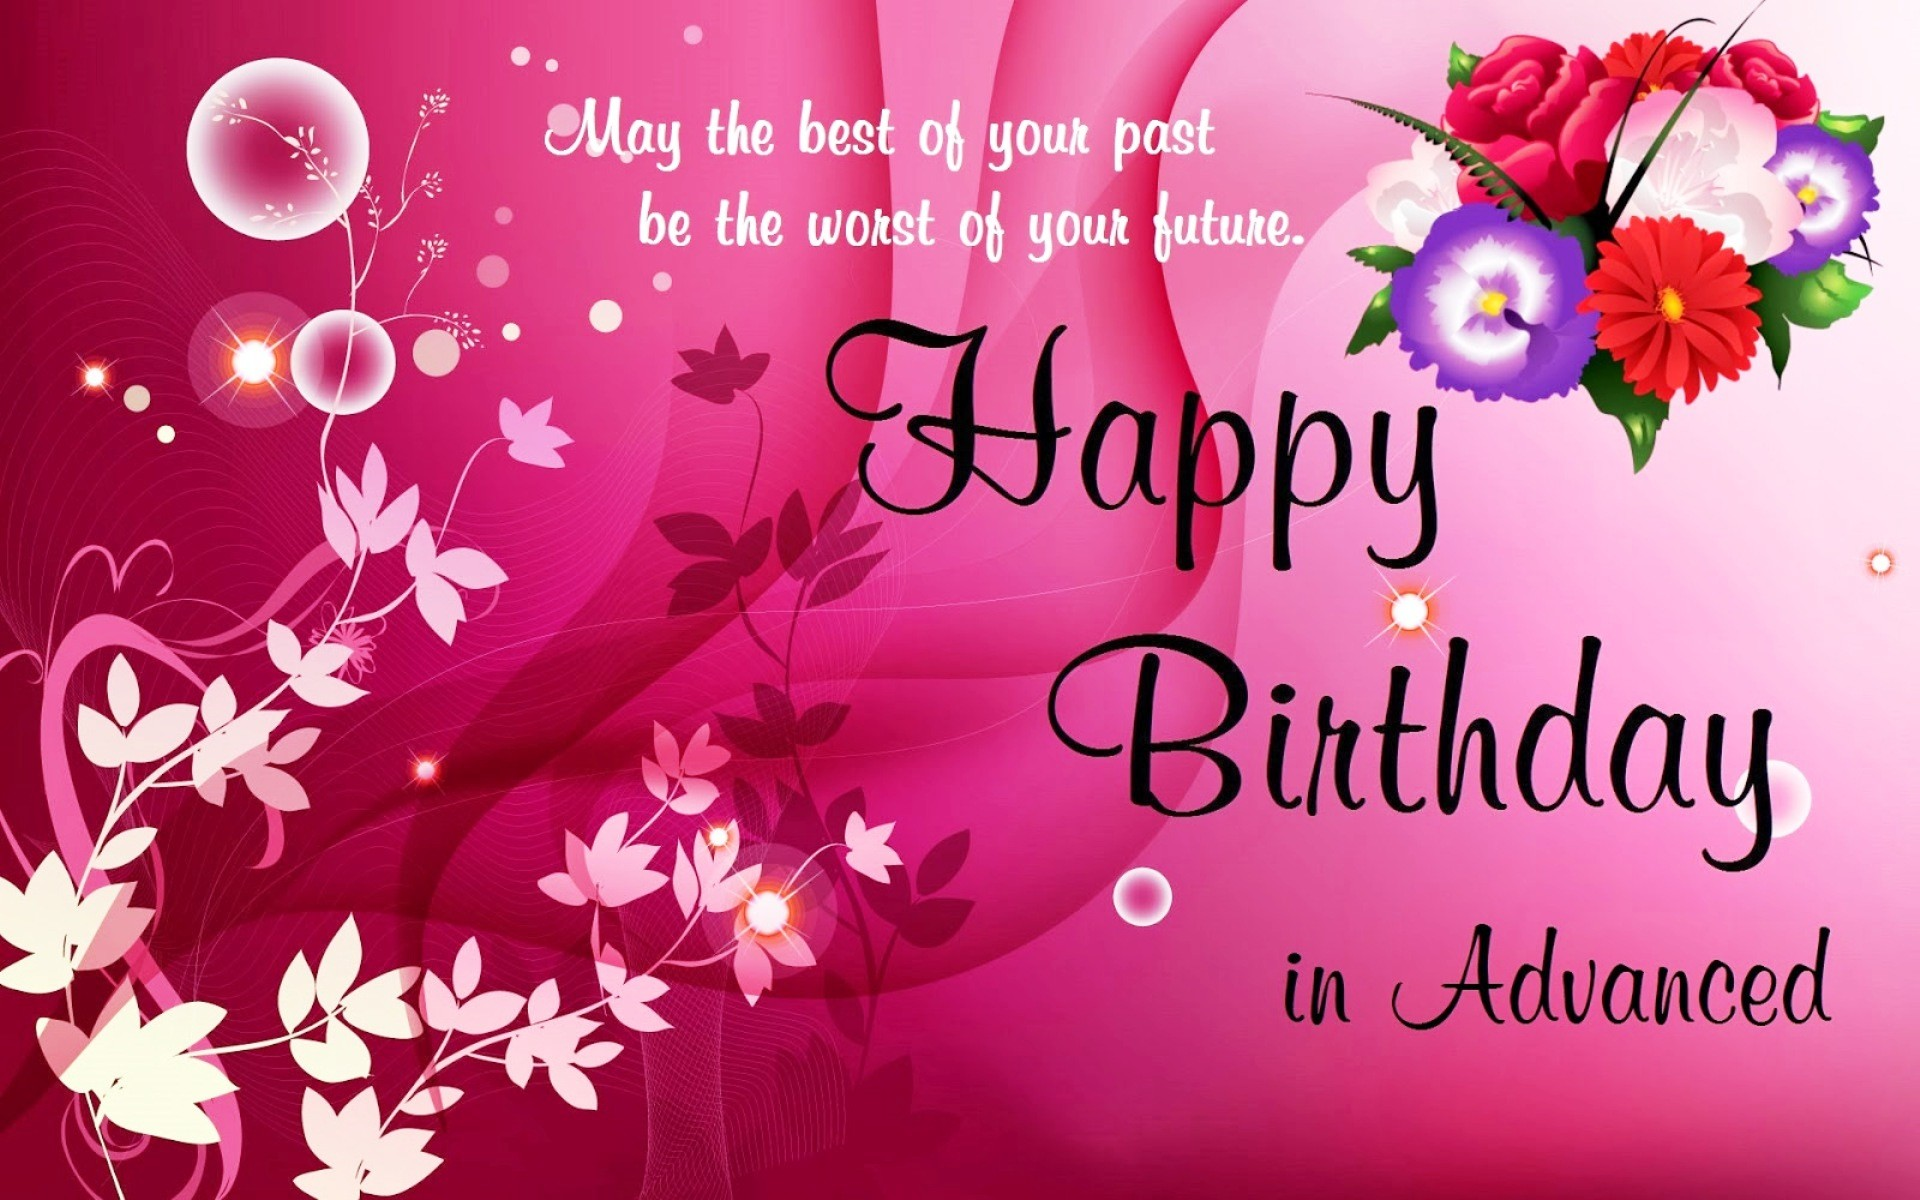 birthday wishes images free download ; birthday-wishes-images-free-latest-happy-birthday-wishes-wallpapers-get-the-newest-collection-of-design-of-birthday-wishes-images-free